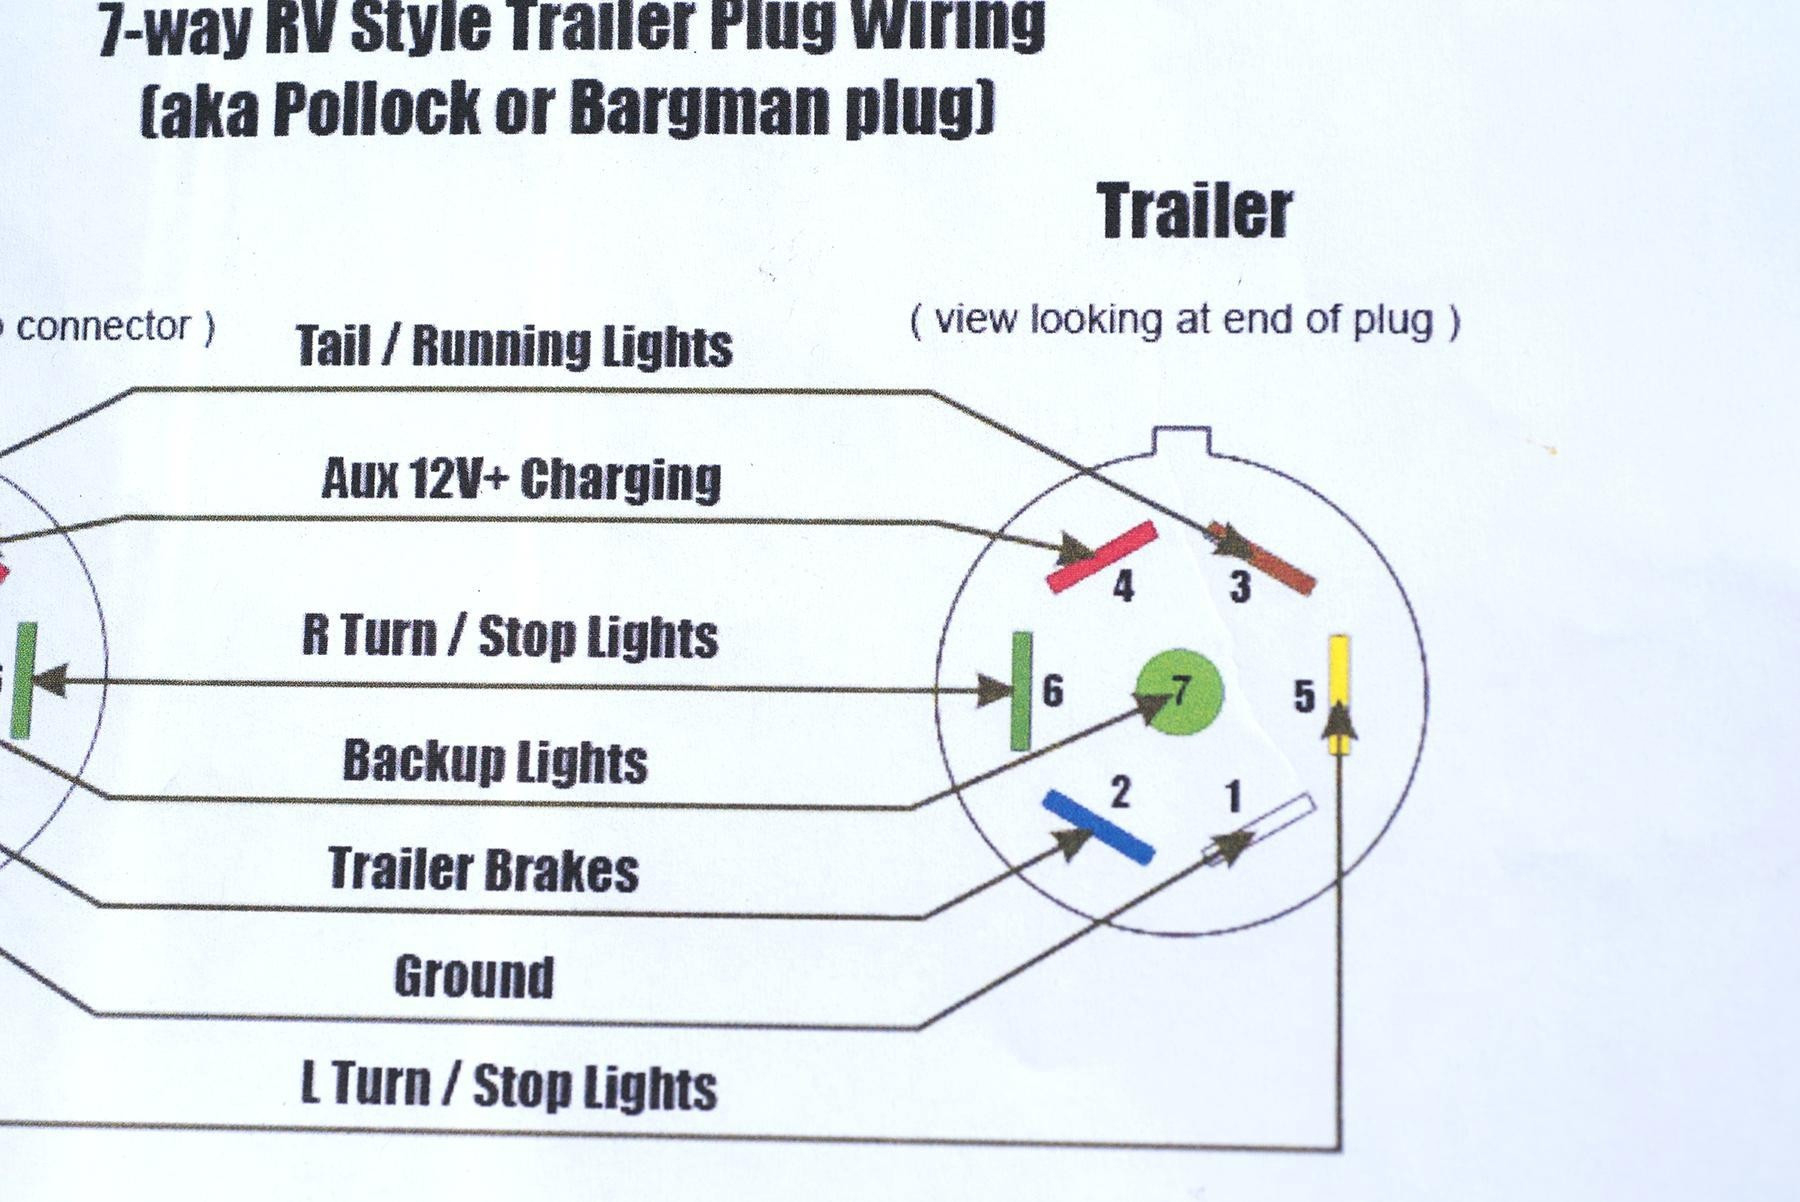 Phillips 7 Pin Trailer Connector Wiring Diagram - Wiring Data Diagram - 7 Plug Wiring Diagram Trailer